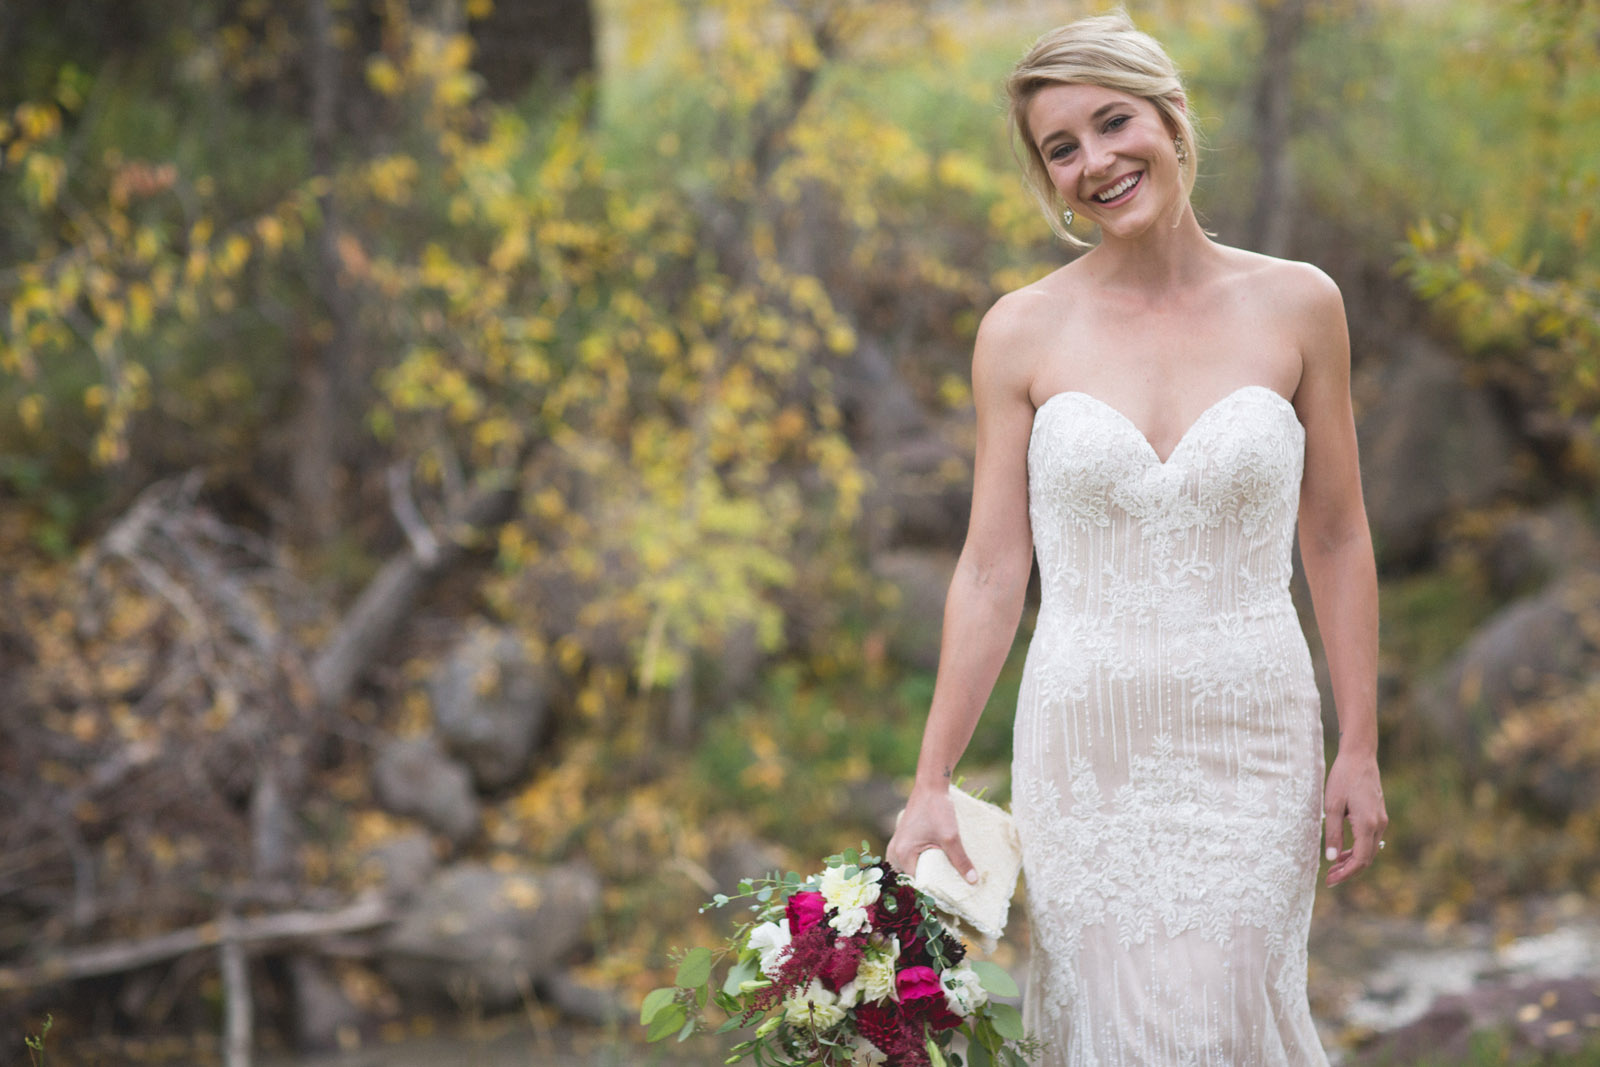 042-beautiful-portrait-of-bride-in-dress-in-nature-and-photojournalistic-photography-in-durango-colorado-elopement-wedding